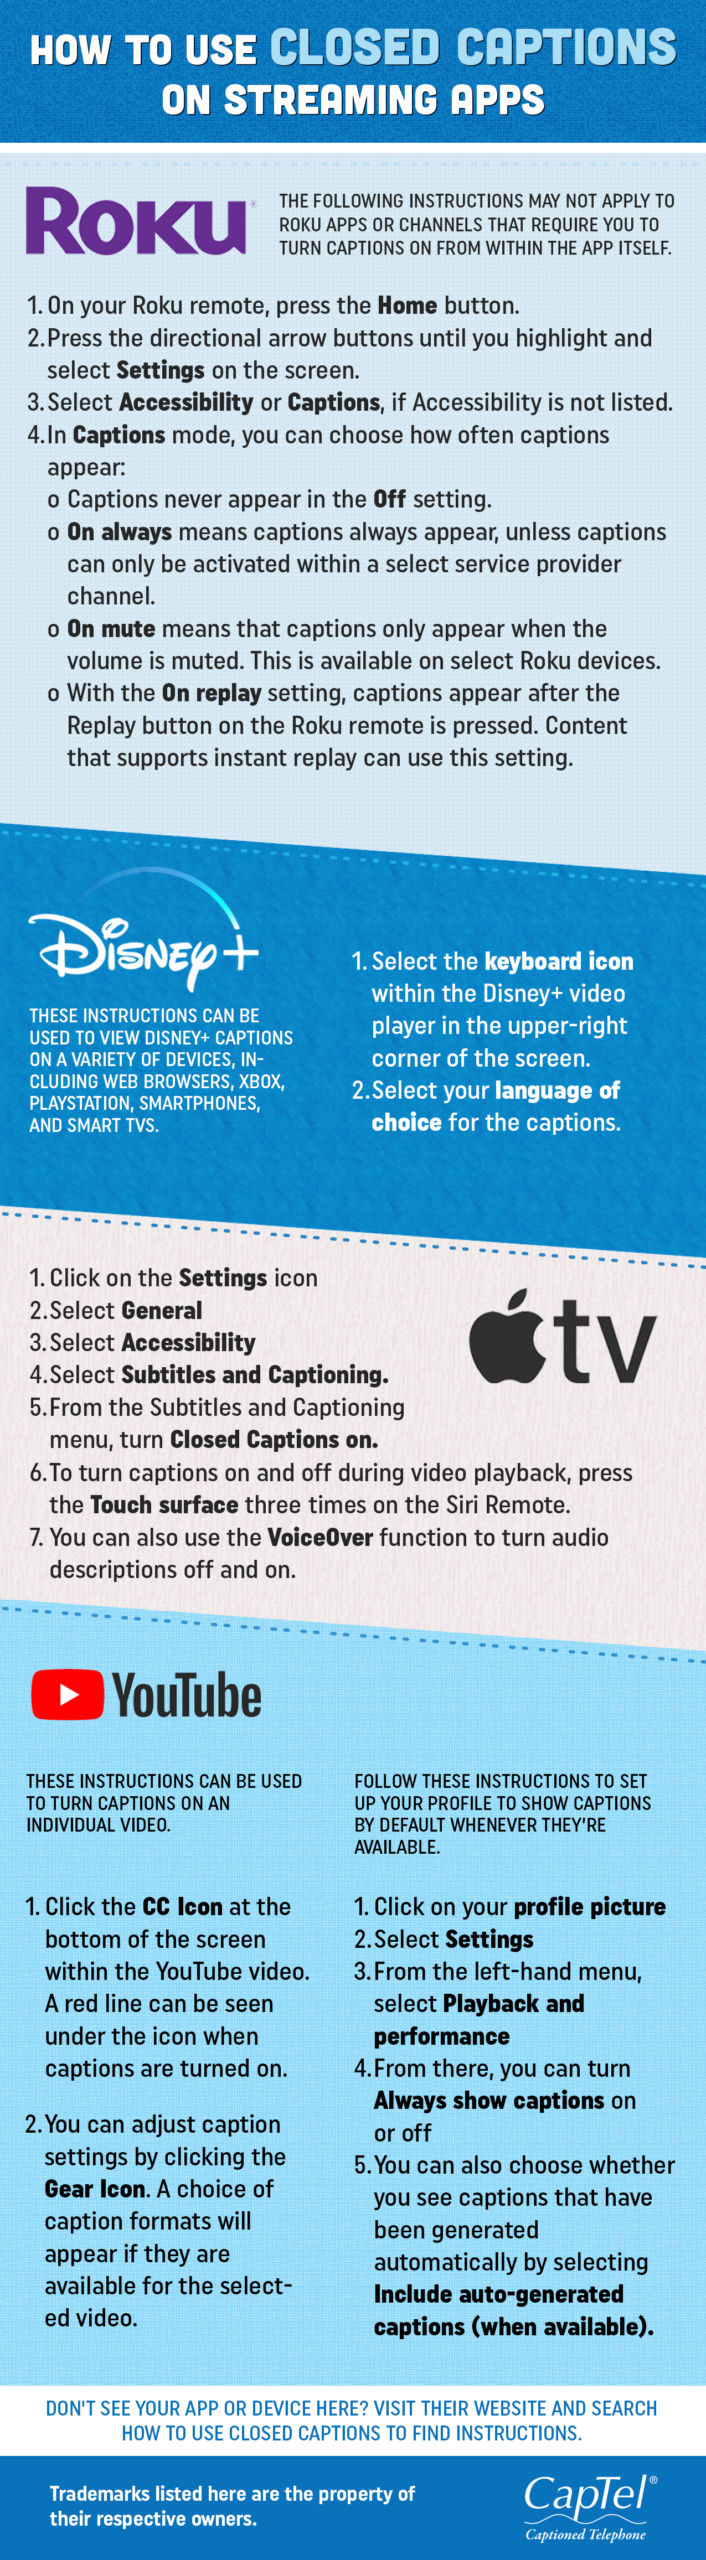 Follow these instructions on how to use closed captions on streaming apps to watch your favorite movies or shows in a hearing loss-friendly way.